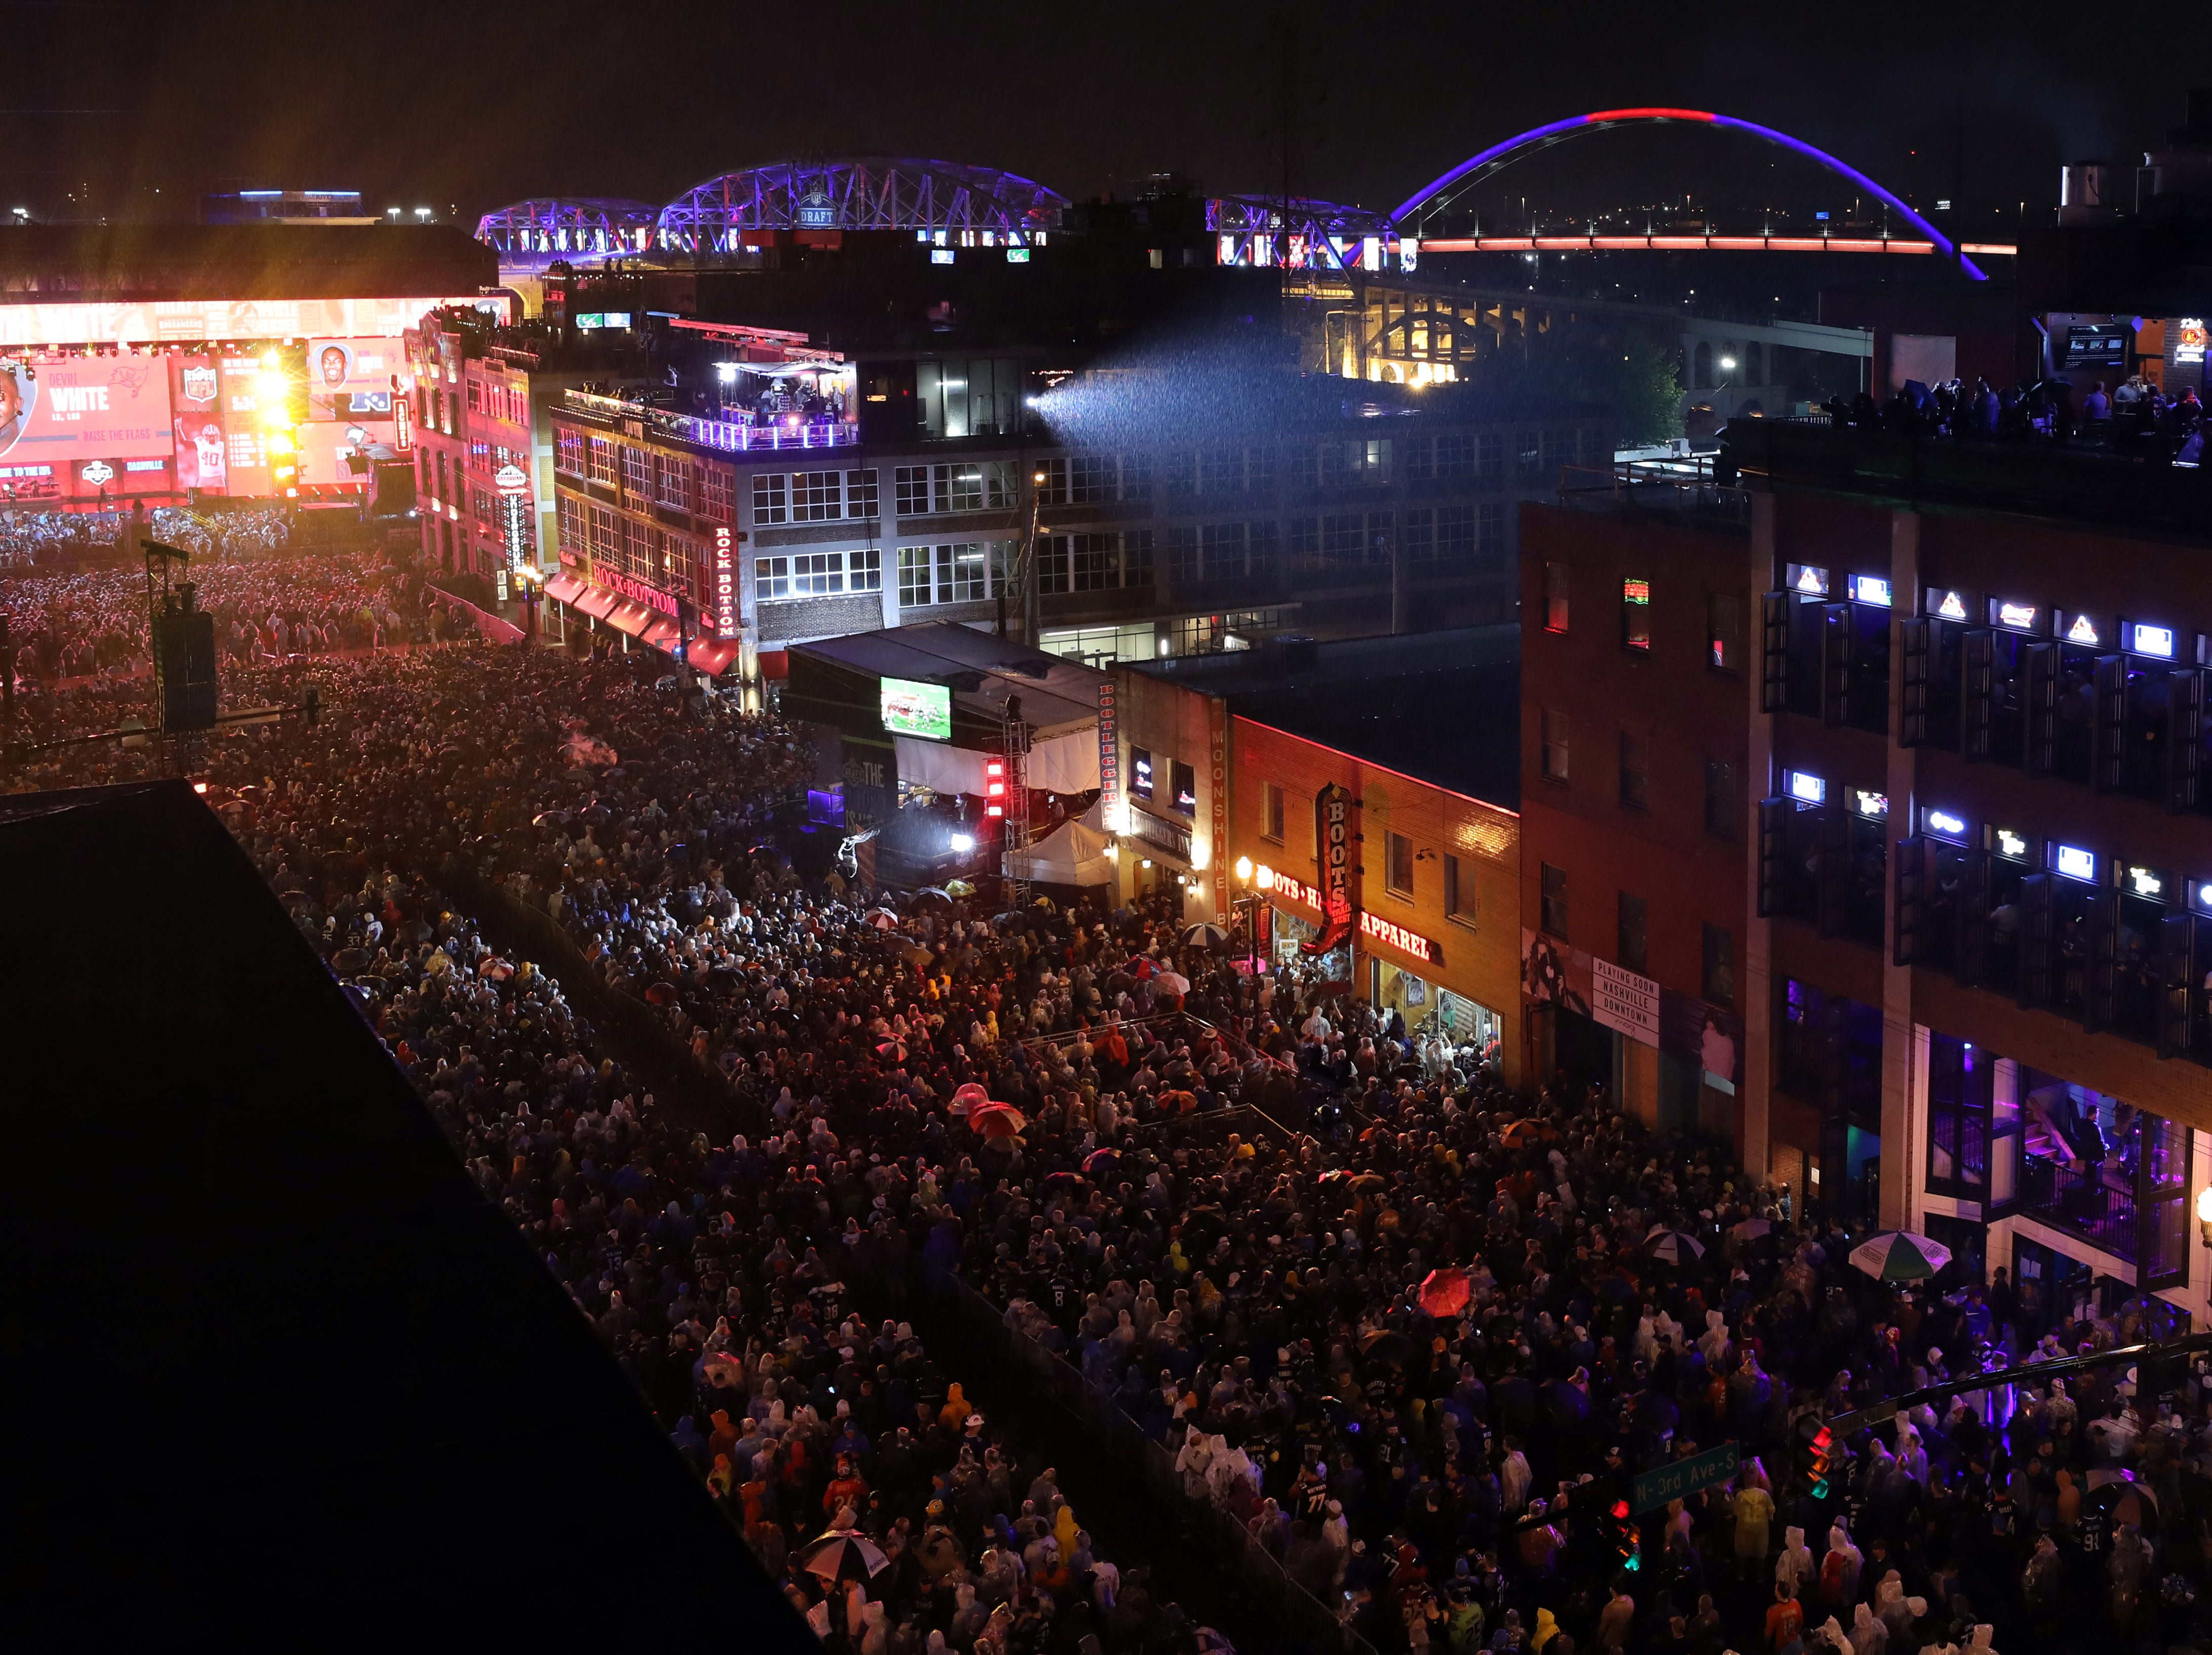 Lower Broadway as seen from the Ole Red rooftop during the Bridgestone watch party for the NFL draft on Lower Broadway Thursday, April 25, 2019.